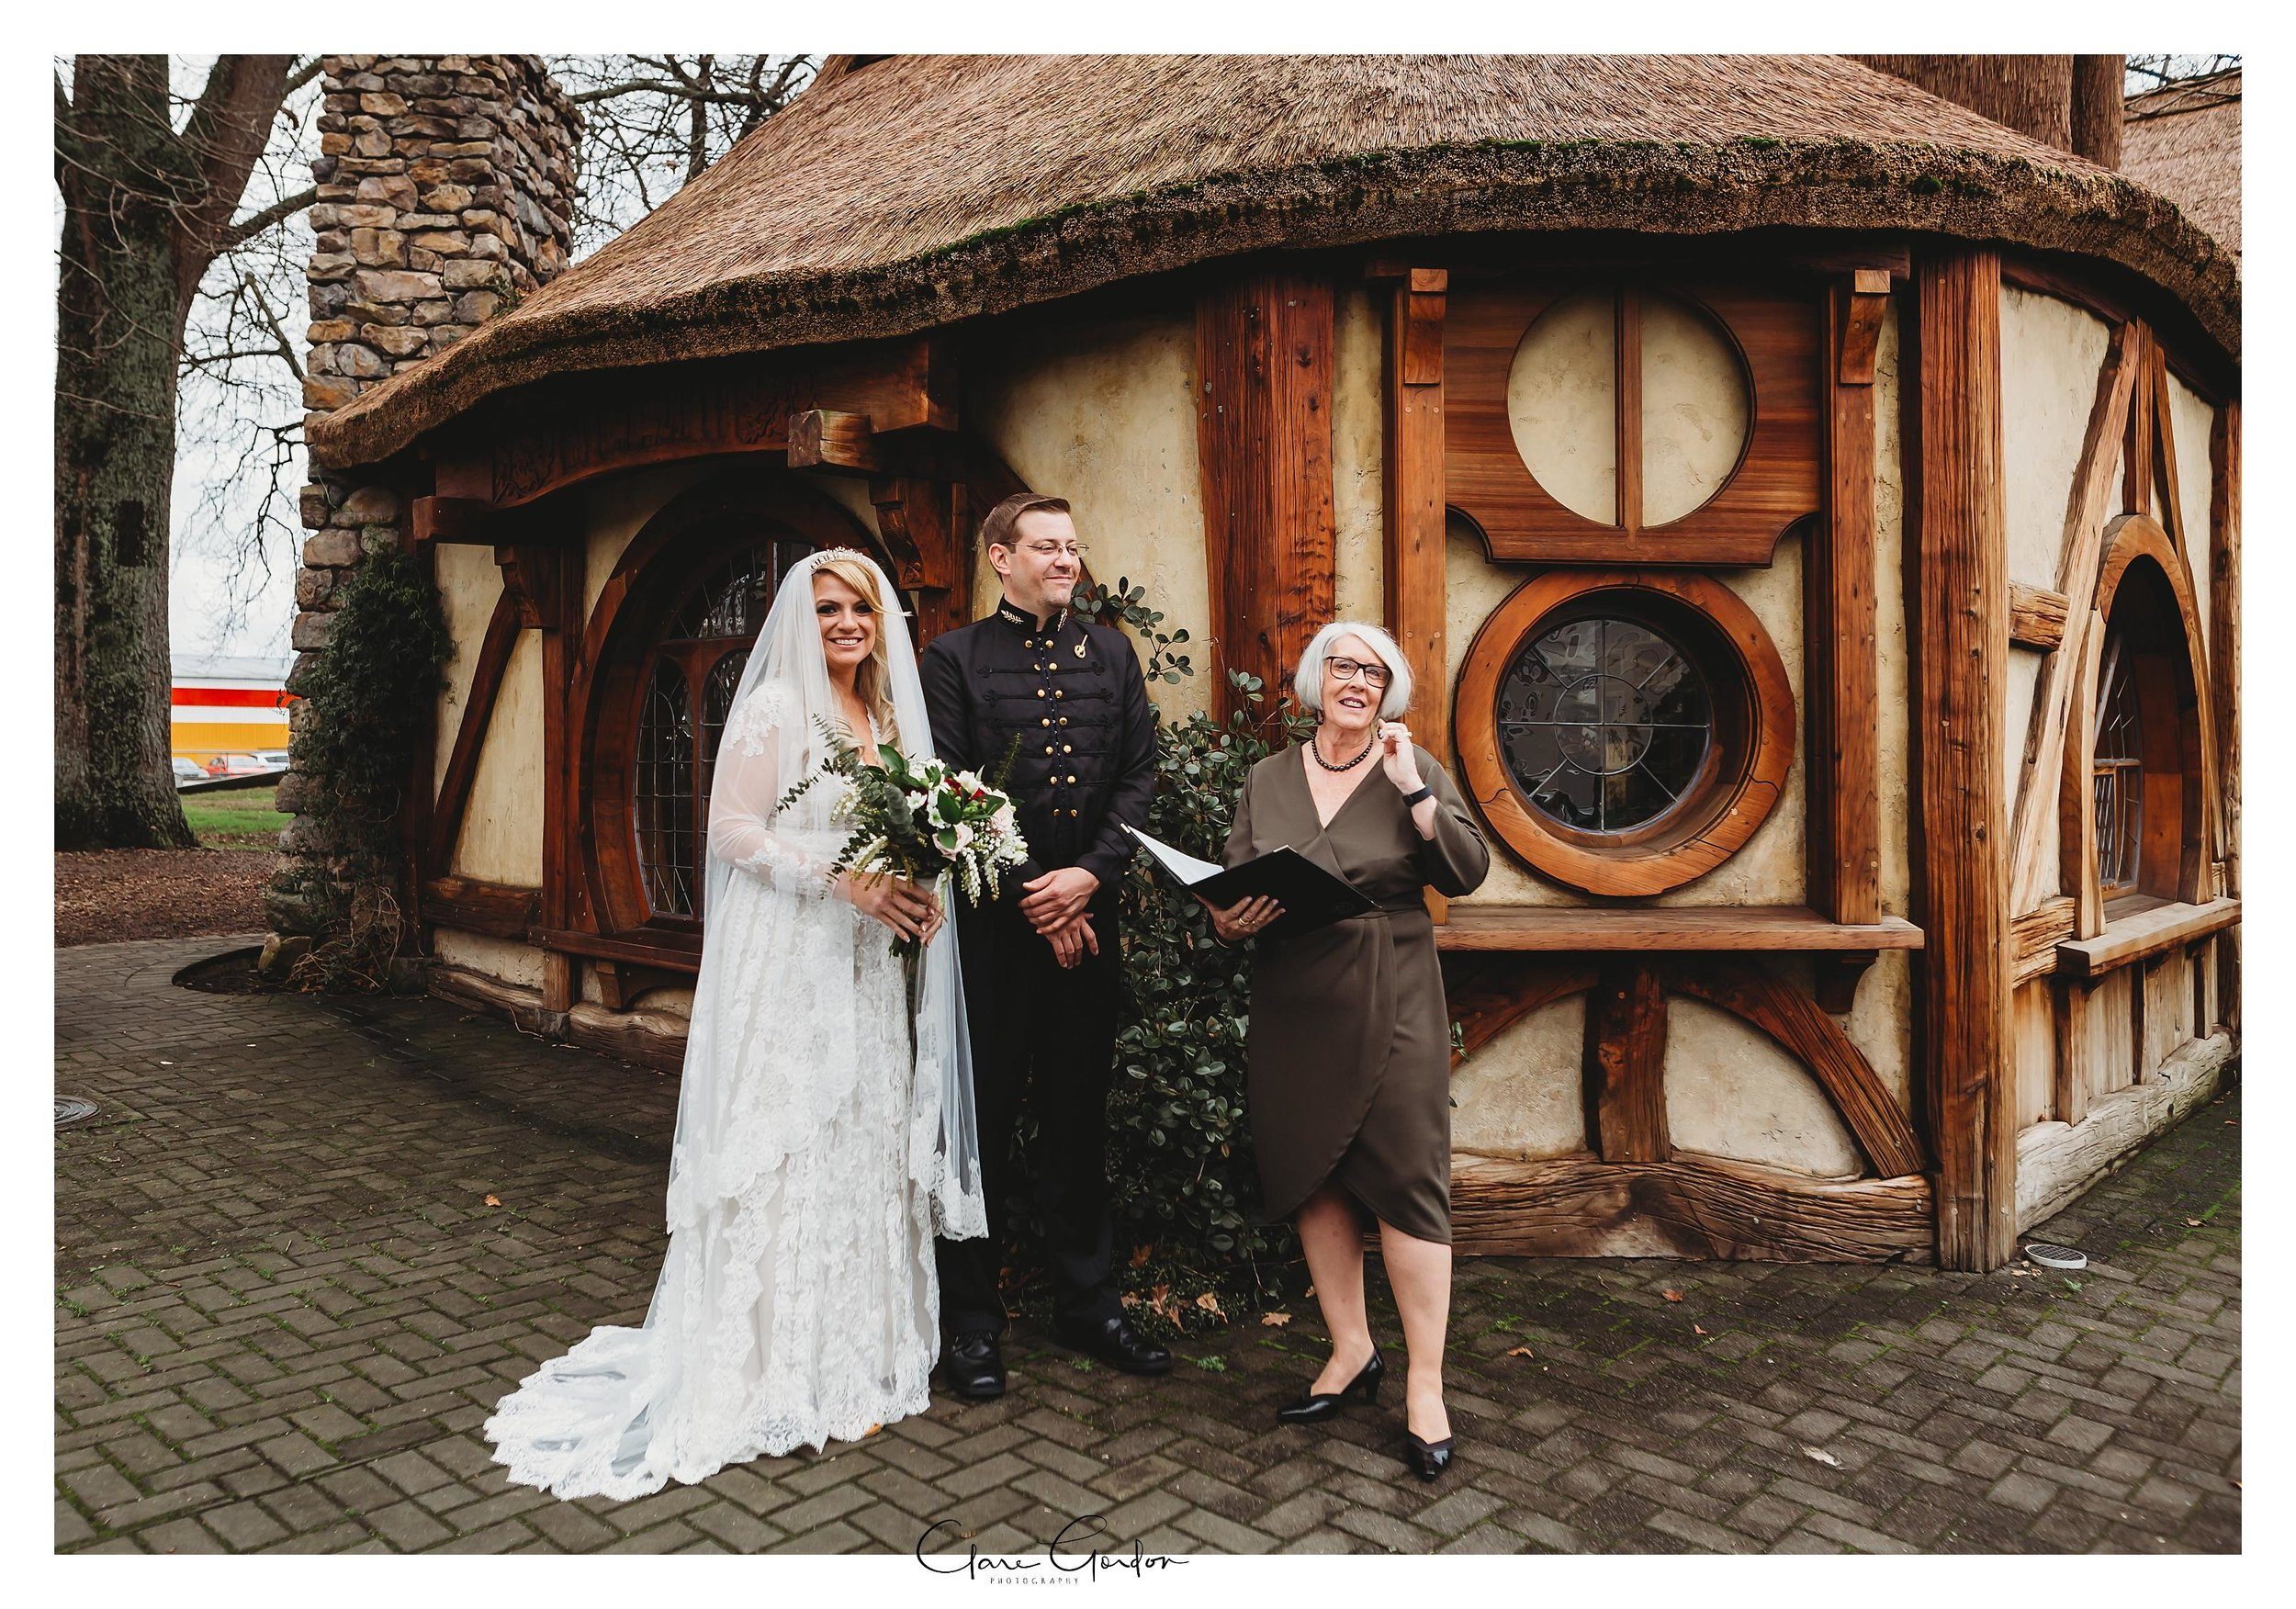 Hobbiton-movie-set-wedding-photo-matamata-bride-and-groom-Photo_newZealand-wedding-photographer (20).jpg